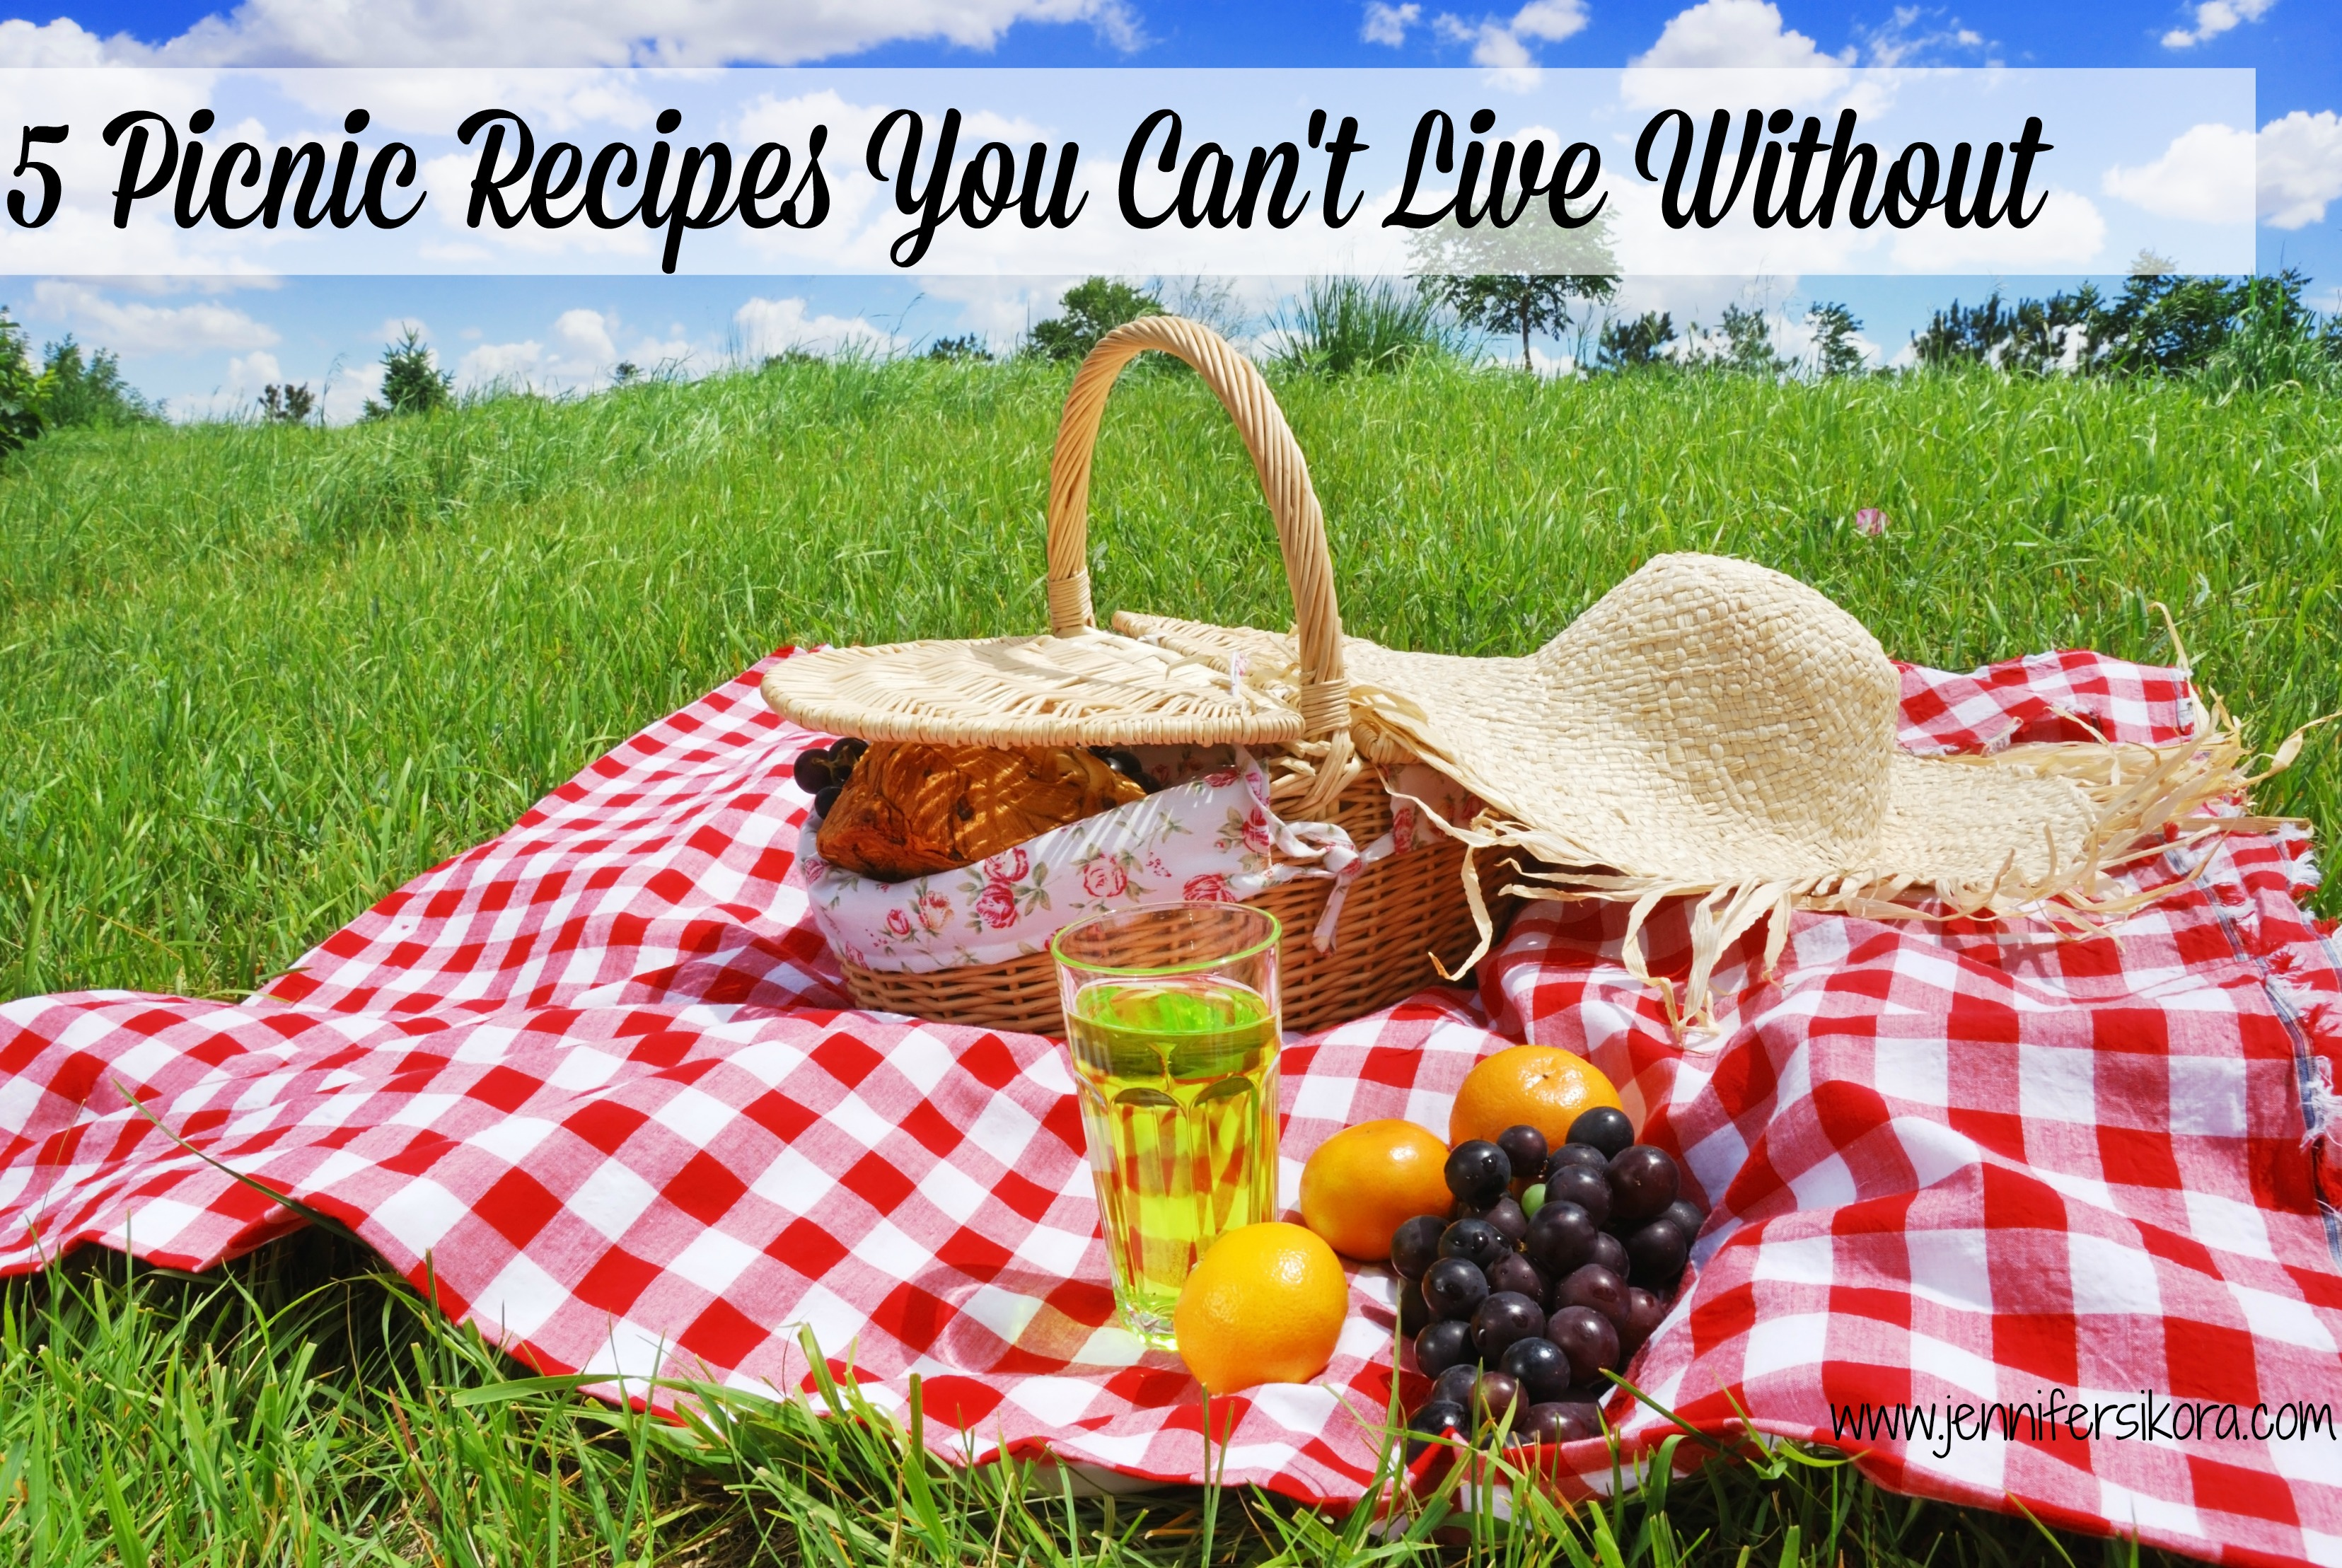 5 Picnic Recipes You Can't Live Without